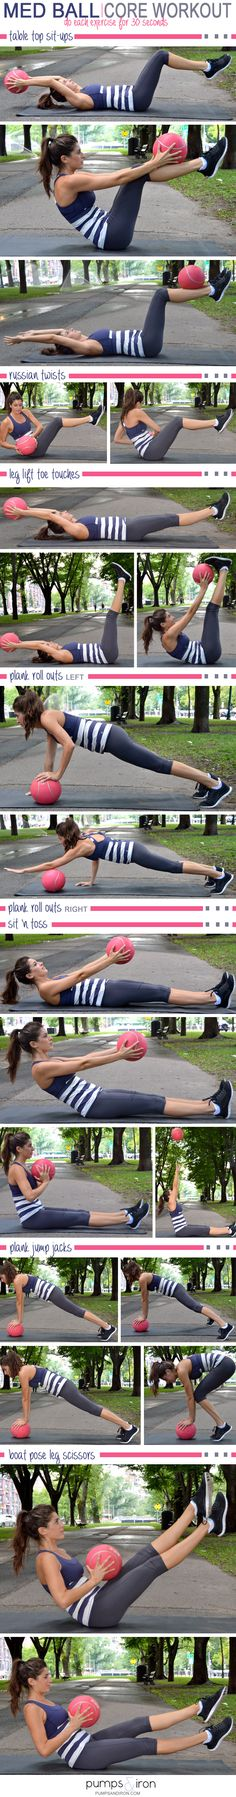 Med Ball Core Workout. Do each move for 30 seconds. Four rounds total.